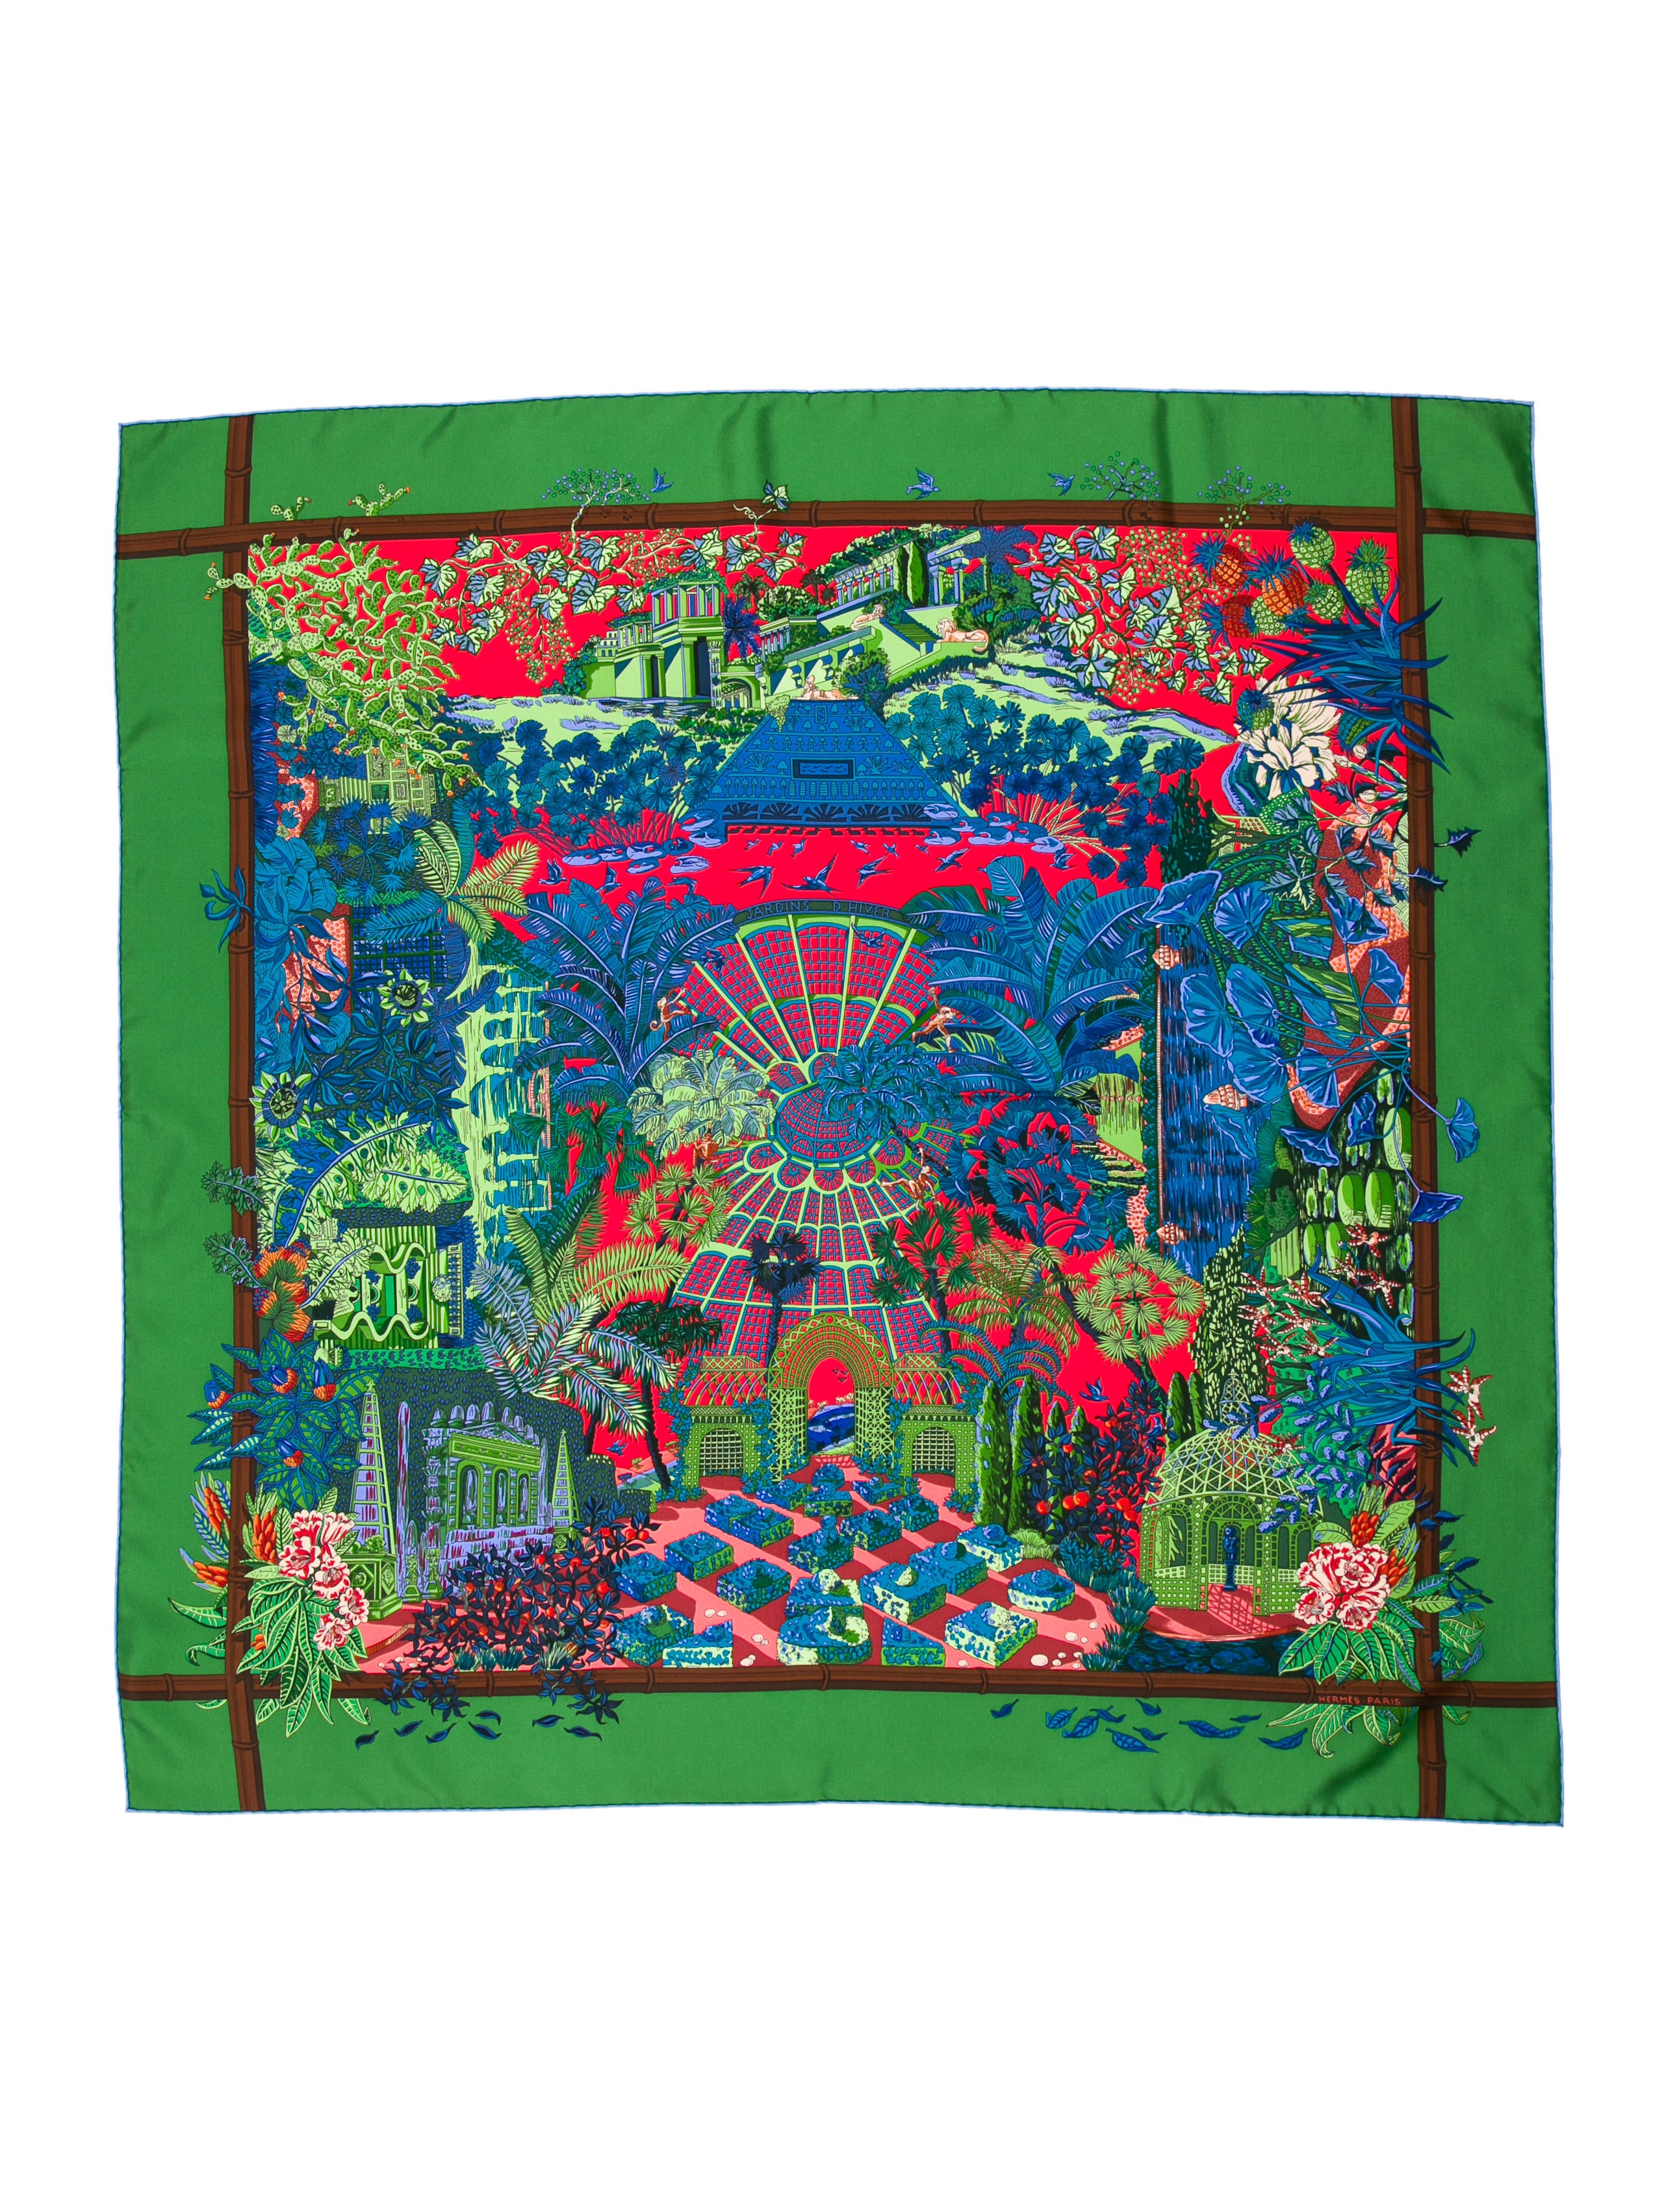 Herm s jardins d 39 hiver silk scarf accessories her79535 - Jardins dhiver com ...